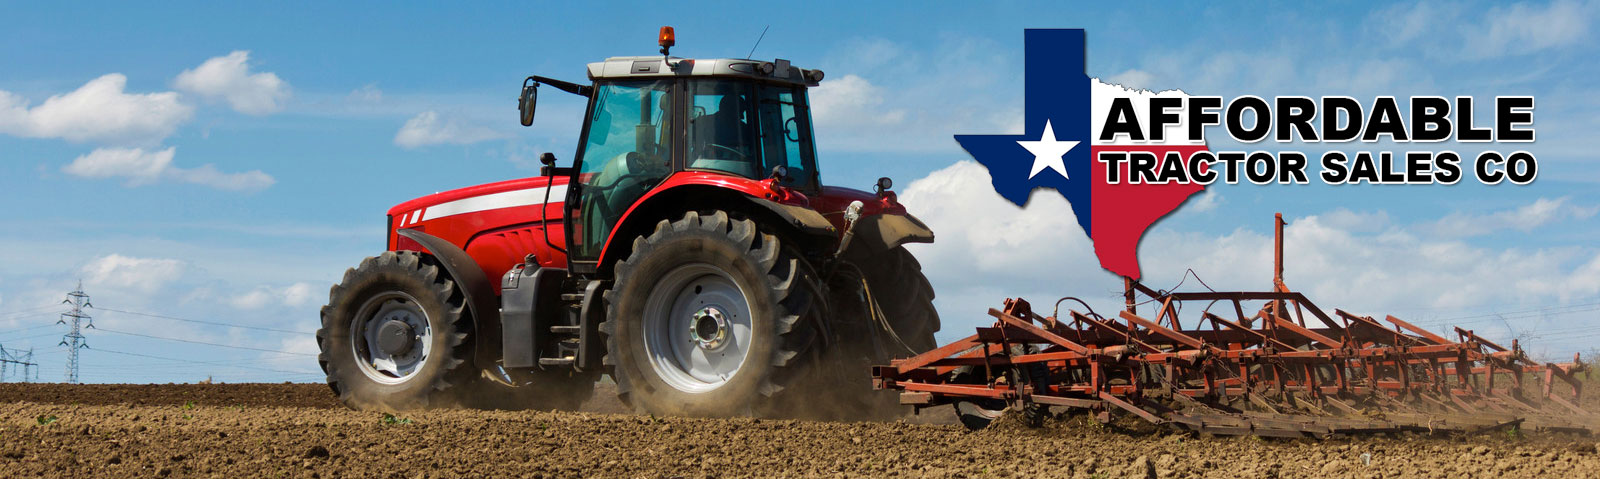 Parts Center Affordable Tractor Sales Company